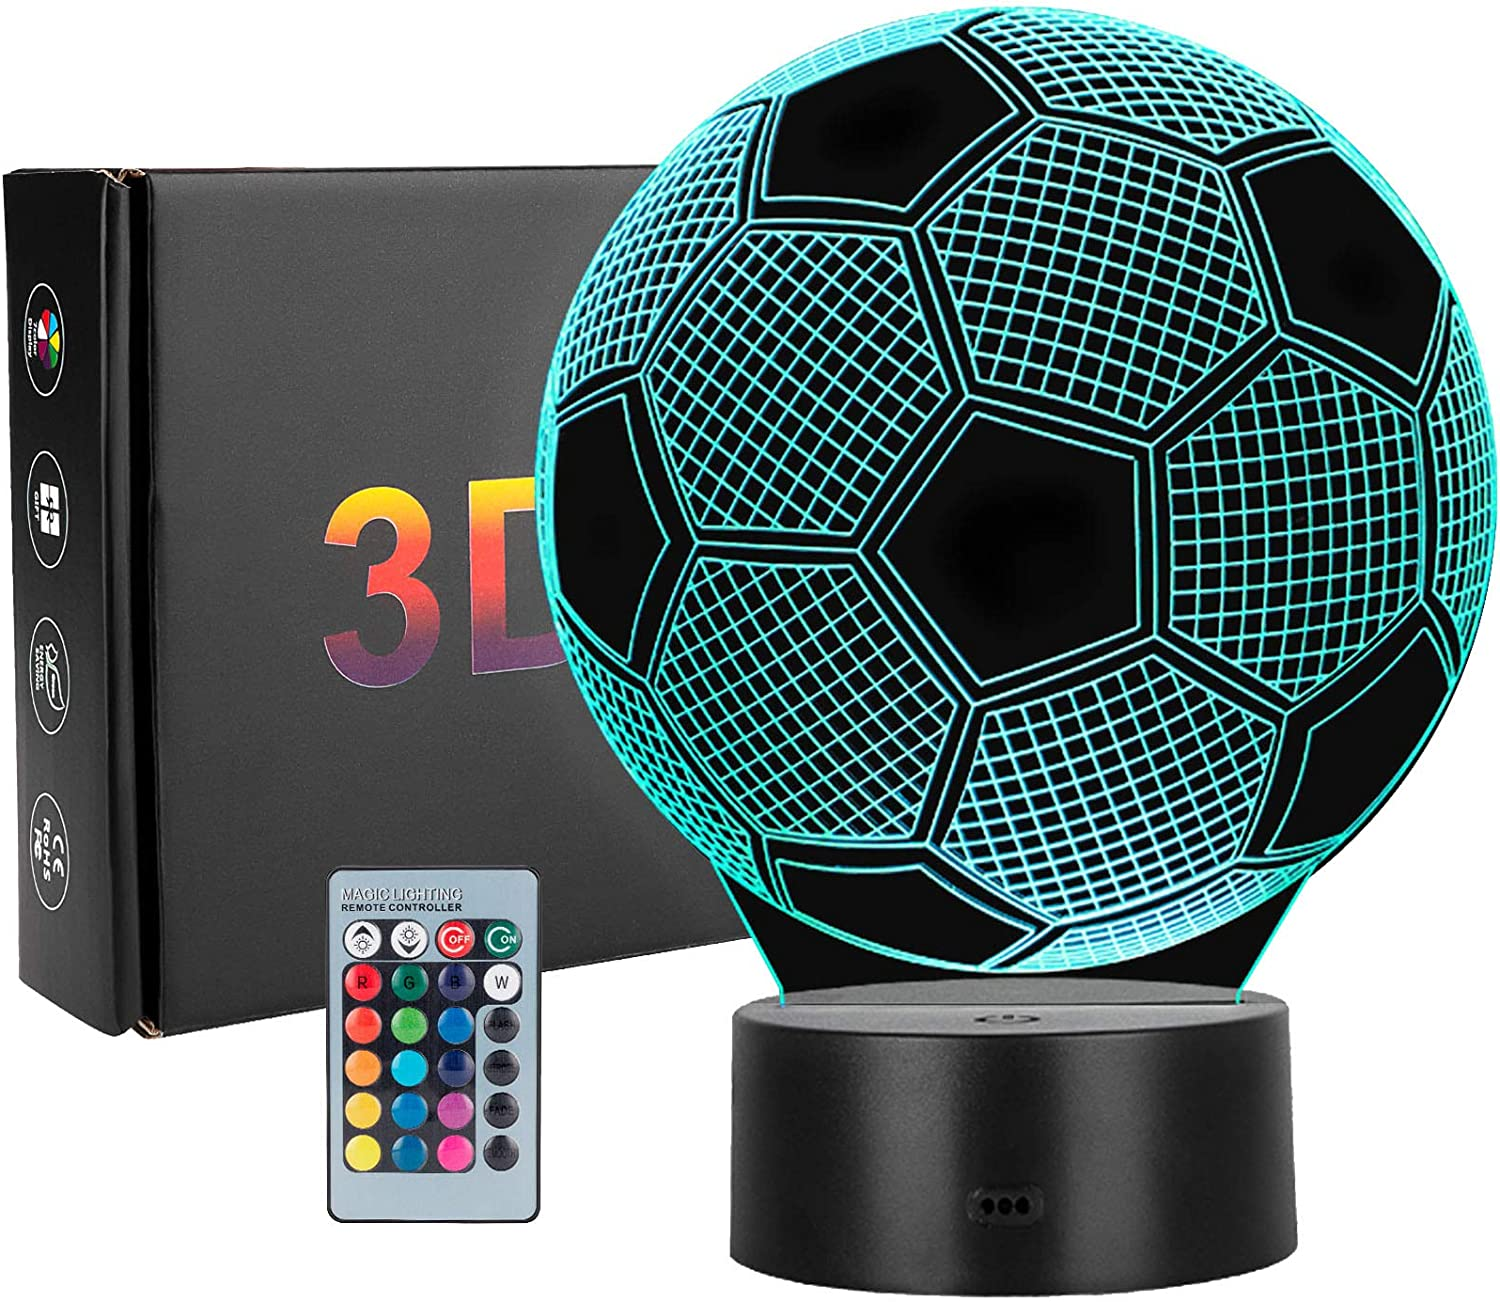 Linkax Soccer Night Light 3D Optical Illusion Football Night Lamp with Remote Control 16 Colors Changing Soccer Birthday Valentine's Day Idea for Sports Fan Boys Girls